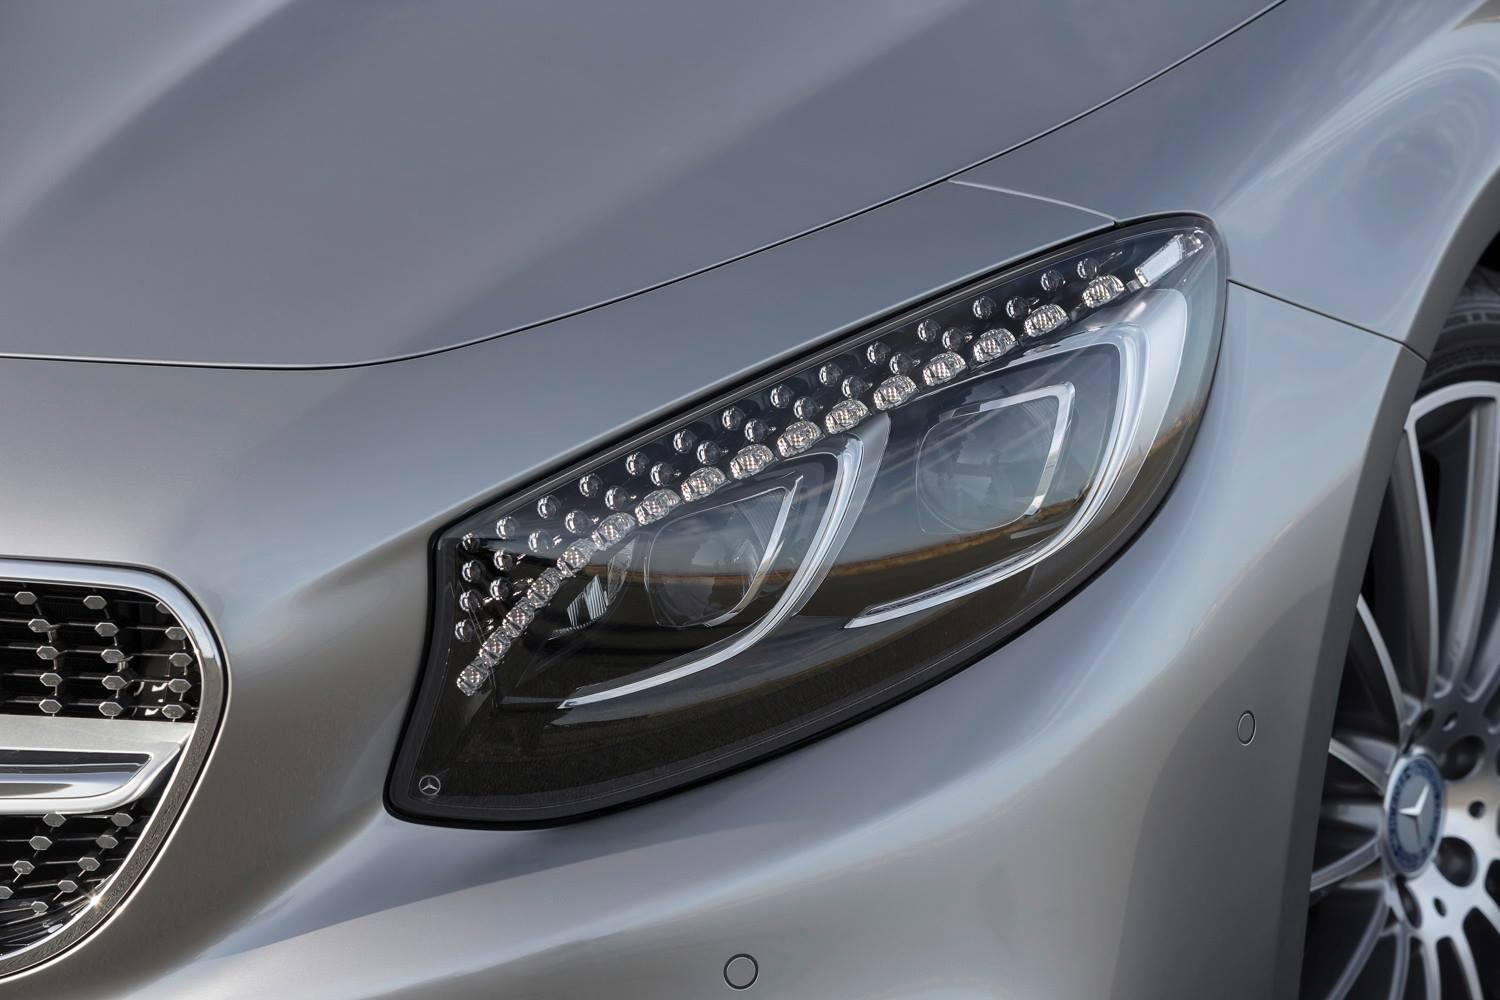 mercedes benz on twitter bbc topgear yes swarovski crystal headlights really http t co fz4th98nrp bbc topgear yes swarovski crystal